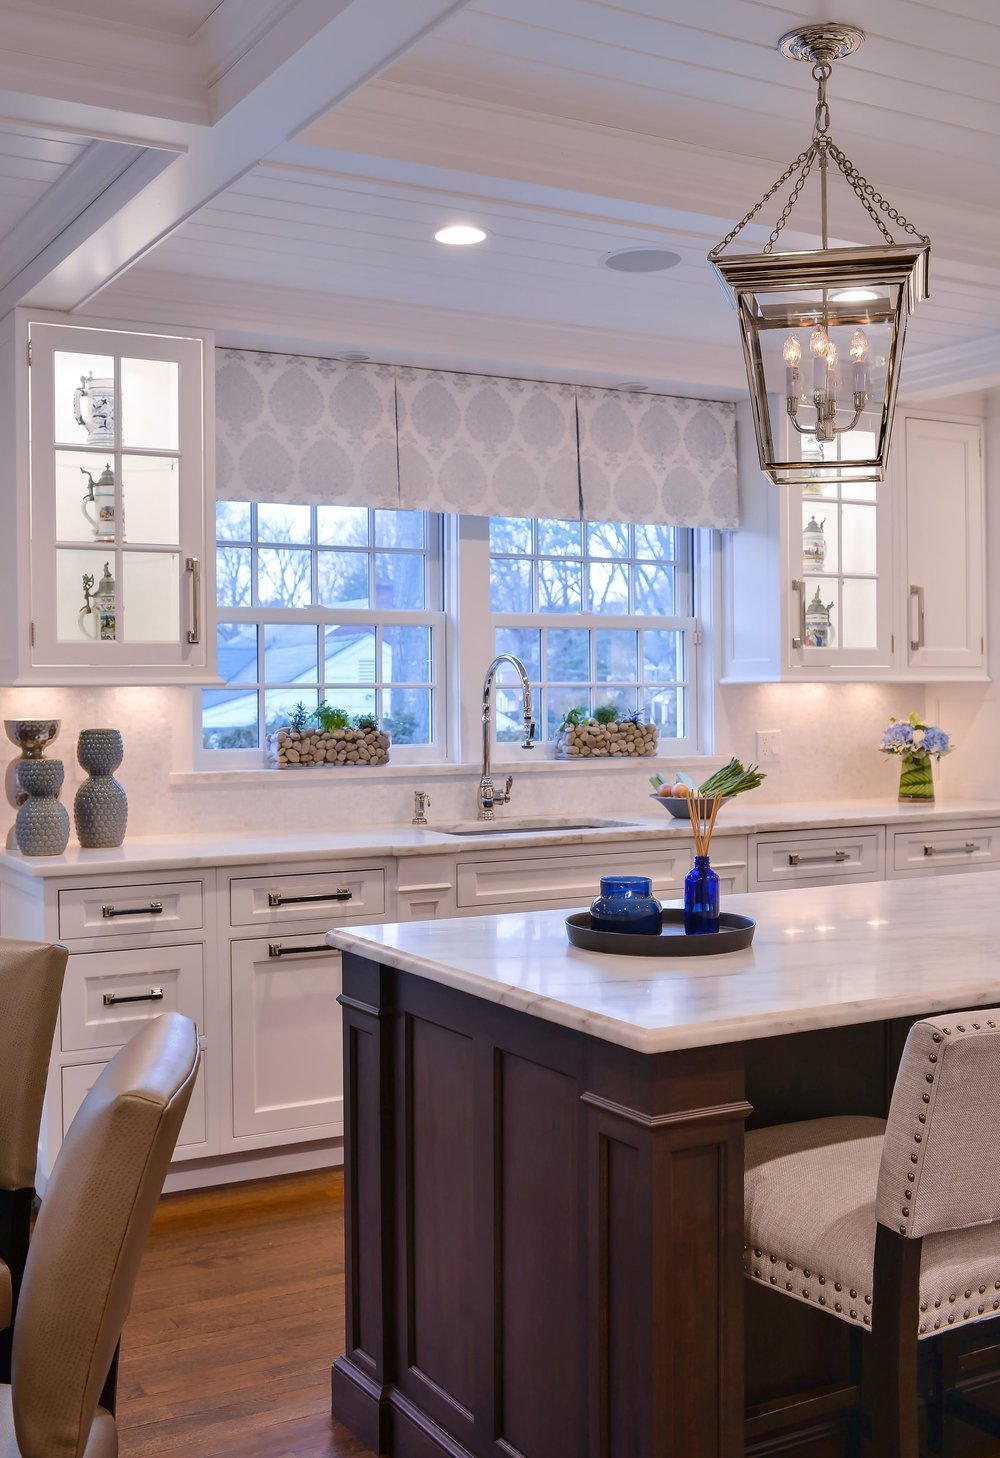 Transitional style kitchen with two classic french window